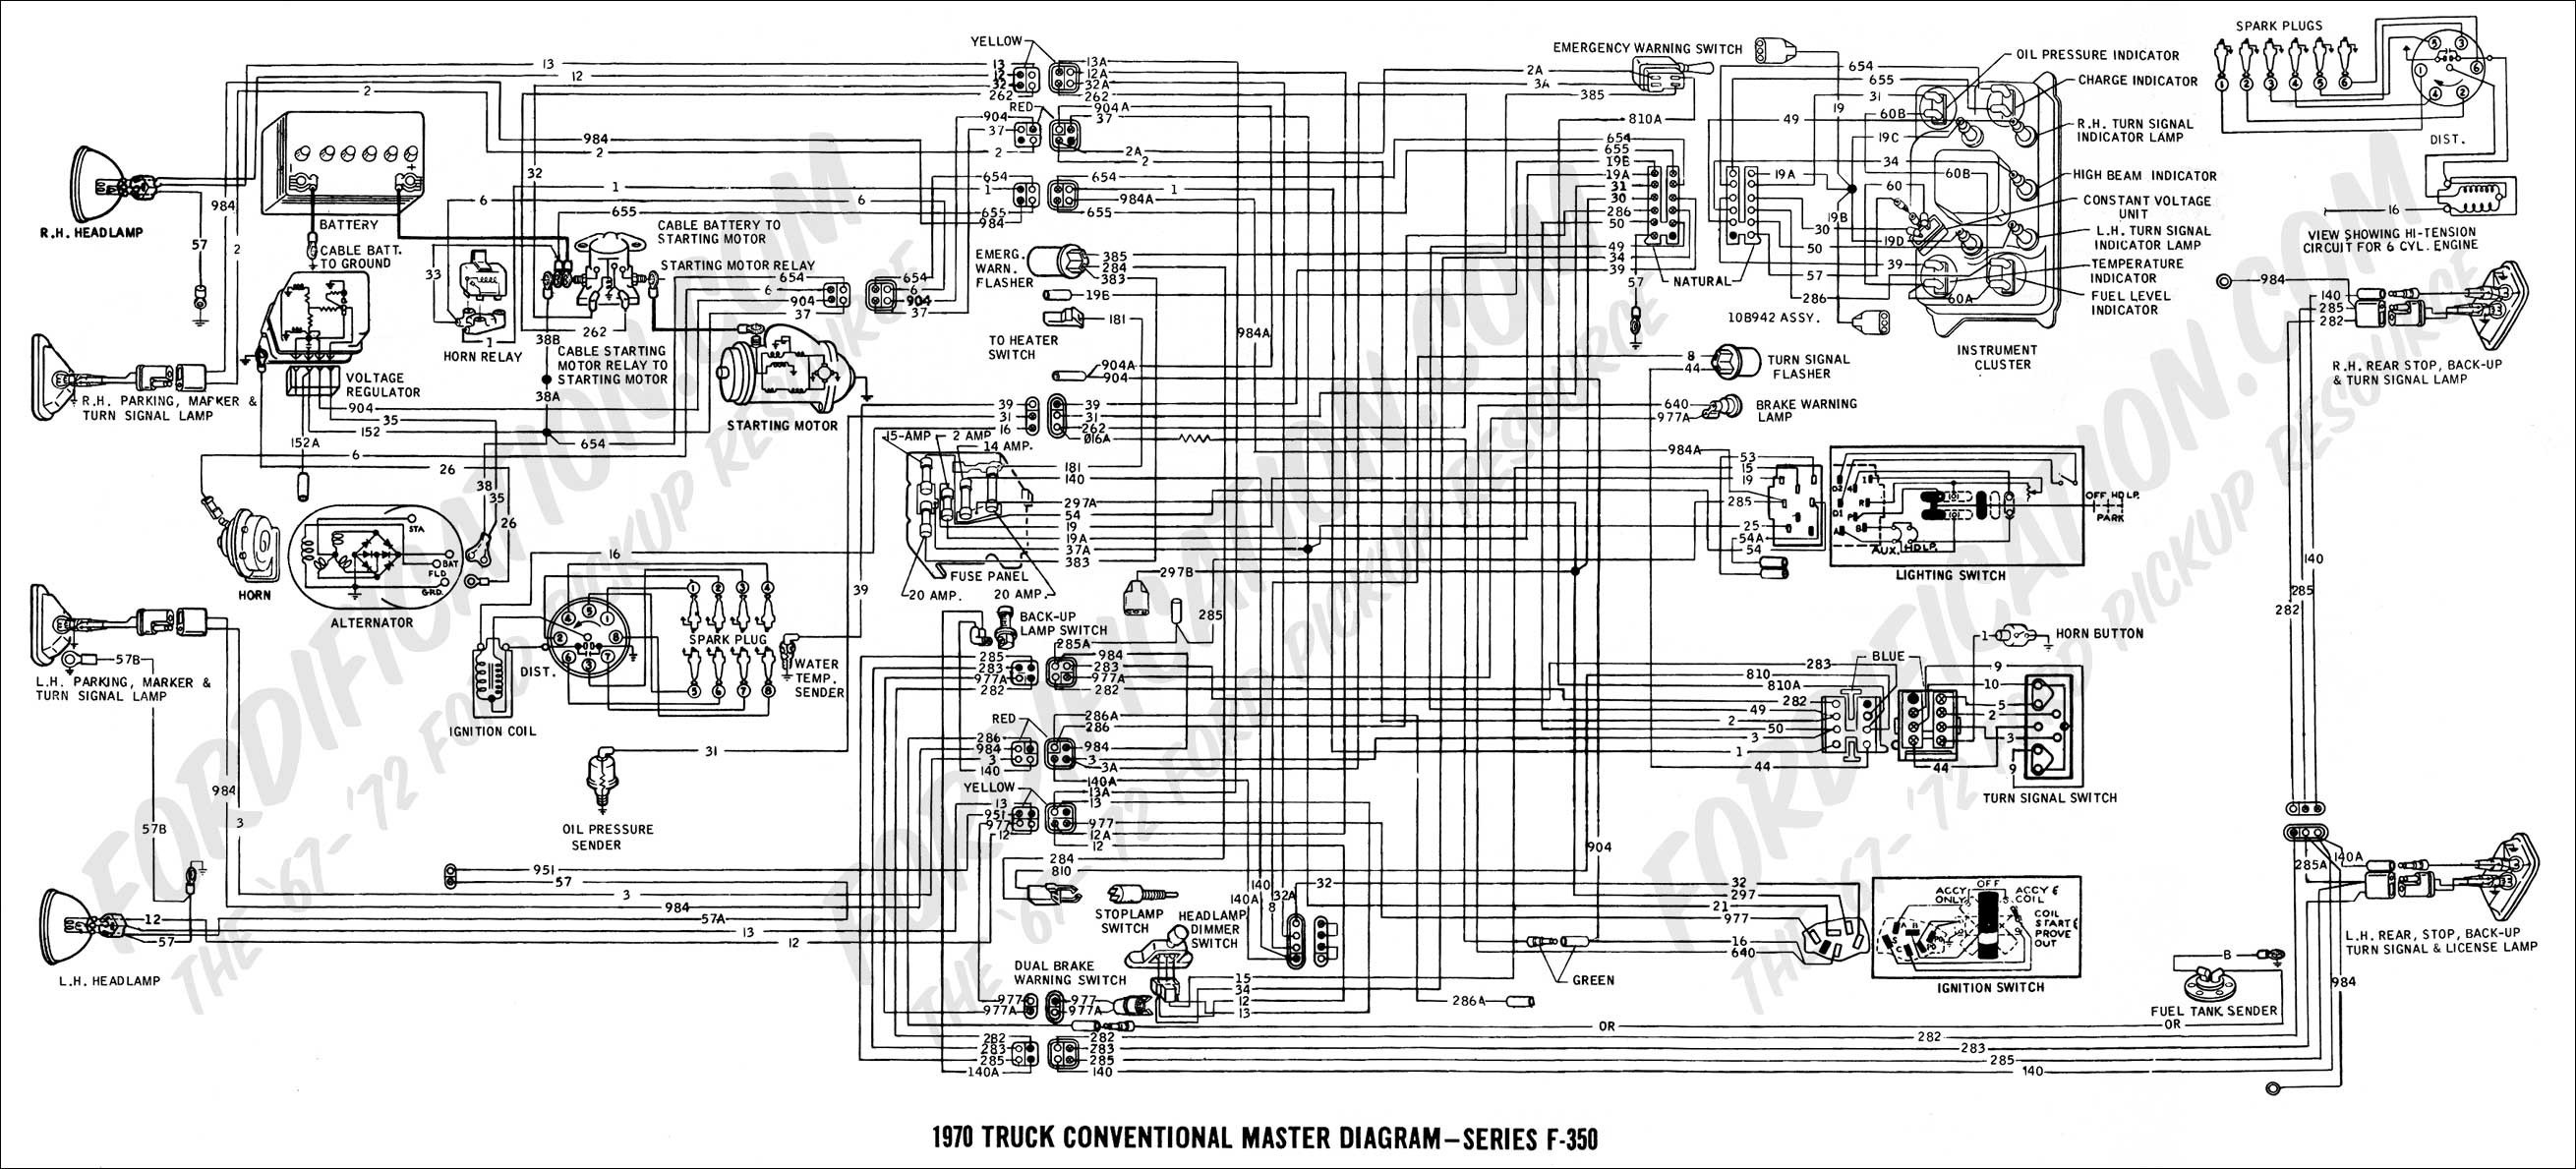 Wiring Diagram For Trailer Tail Lights Best Ford F350 Wiring Diagram About Wiring • Gatbook